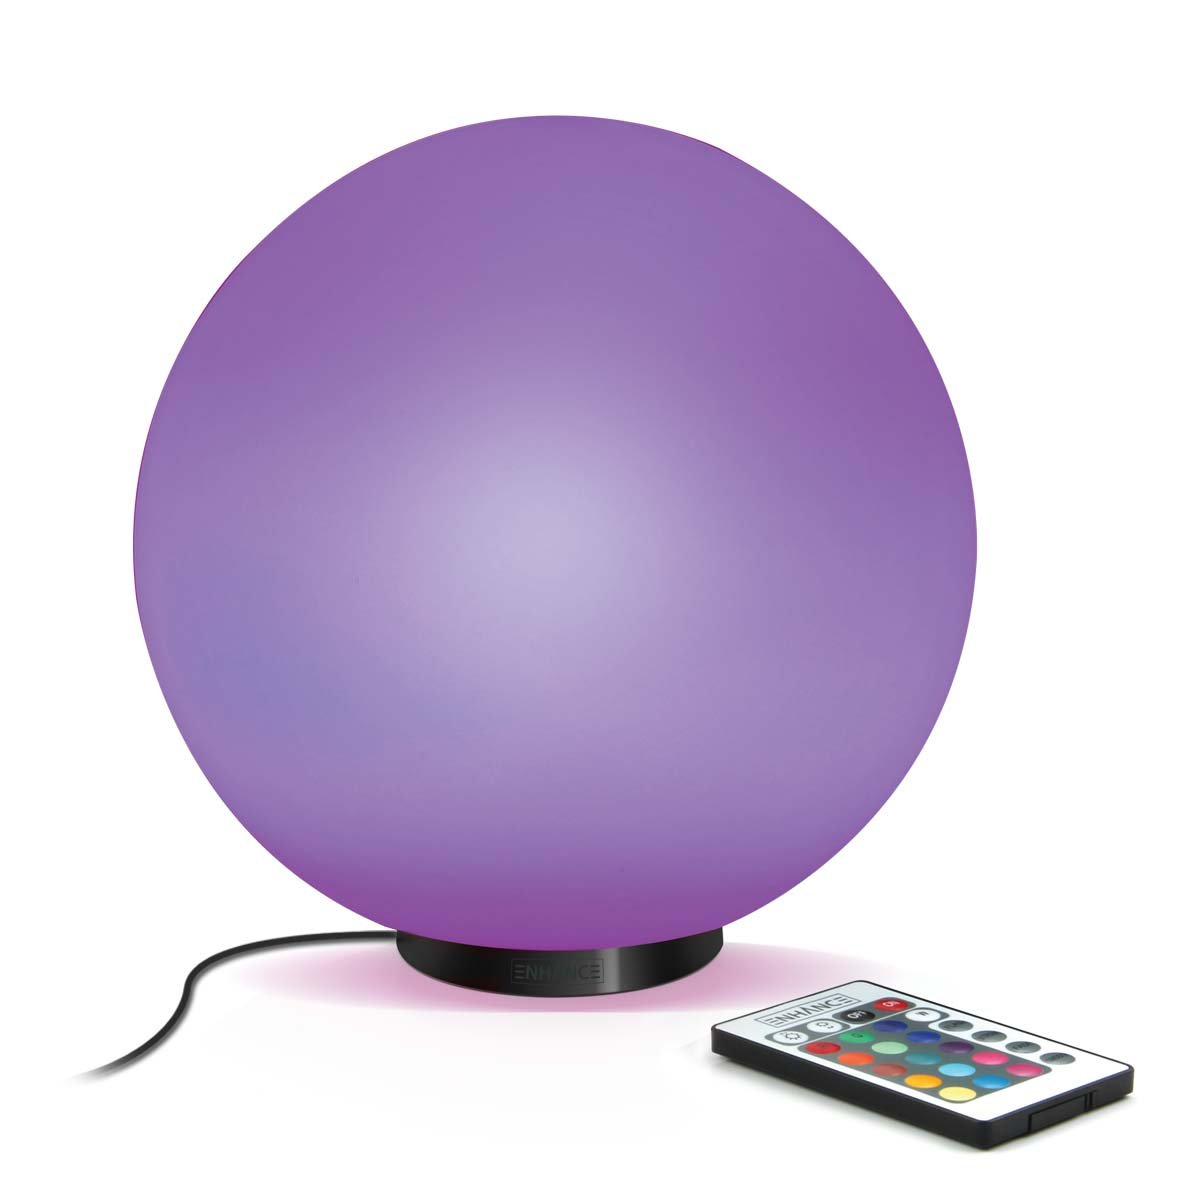 """Enhance Color Changing Mood Light 7.9"""" Energy Lamp with Remote, Battery or AC Adapter Power & Glass Design- Perfect for Yoga, Meditation, Therapy & More"""